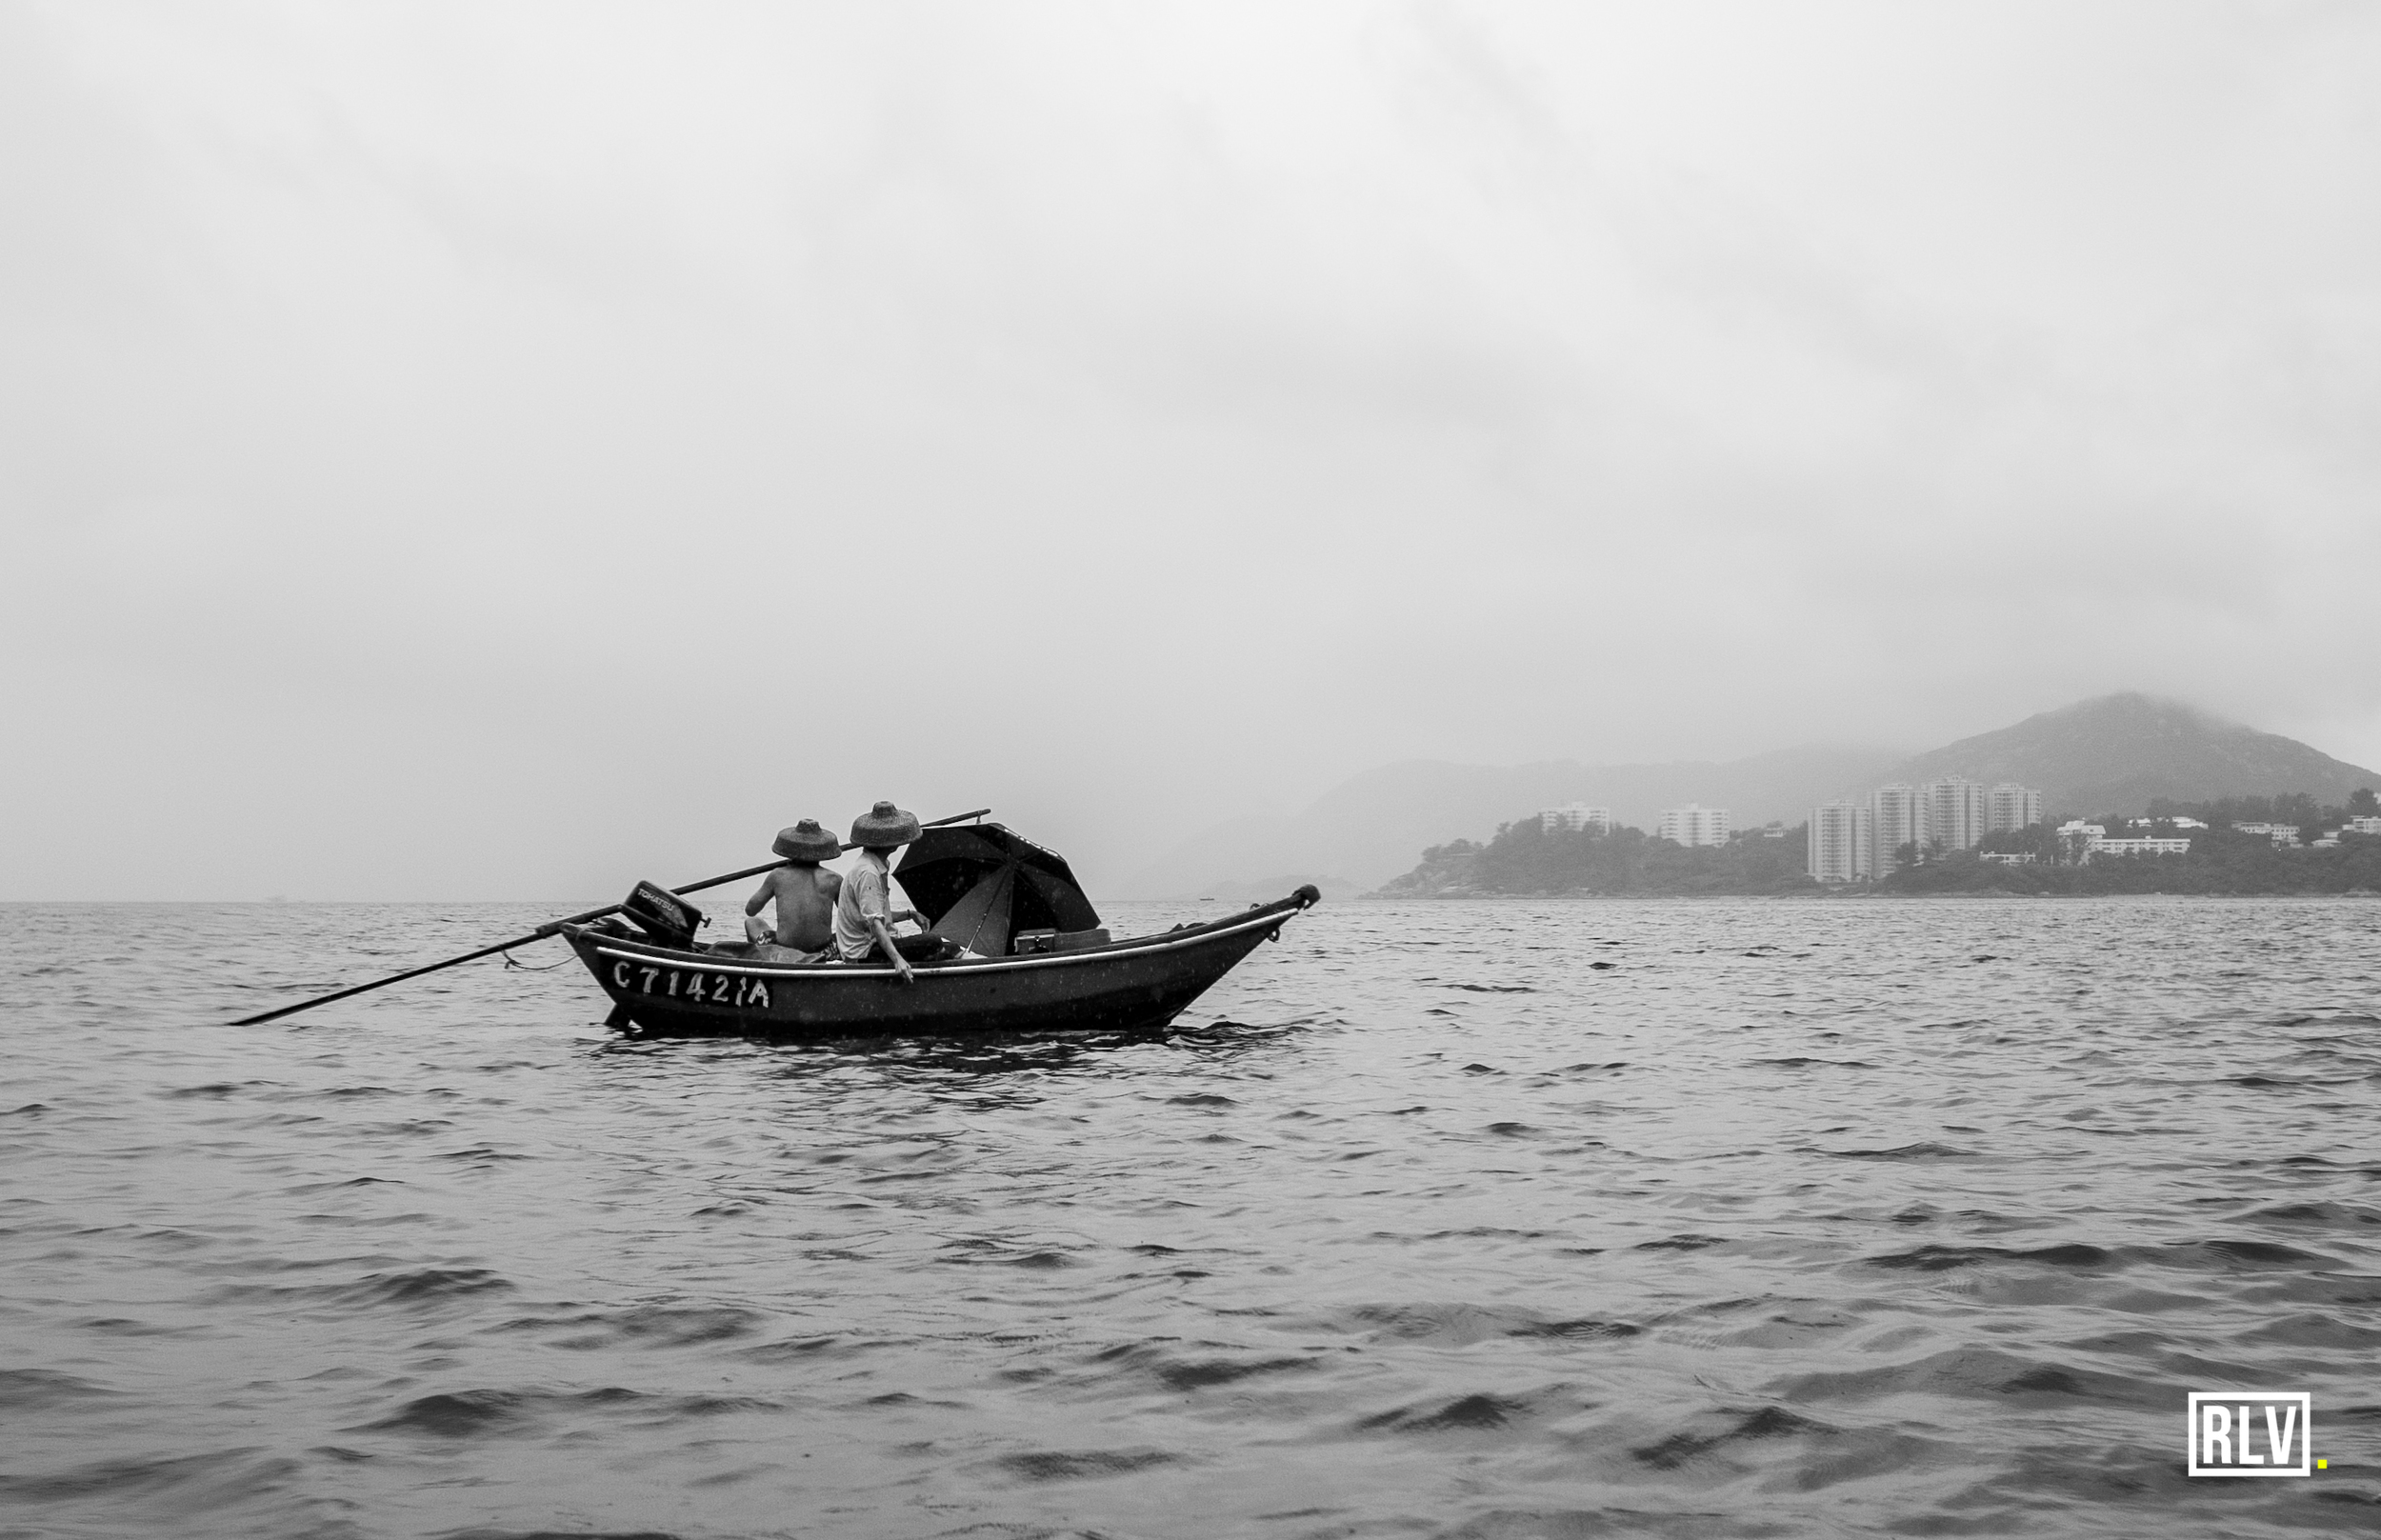 One of my favourite photos from the water. Local fishermen battling the wet and wild conditions off from Stanley beach